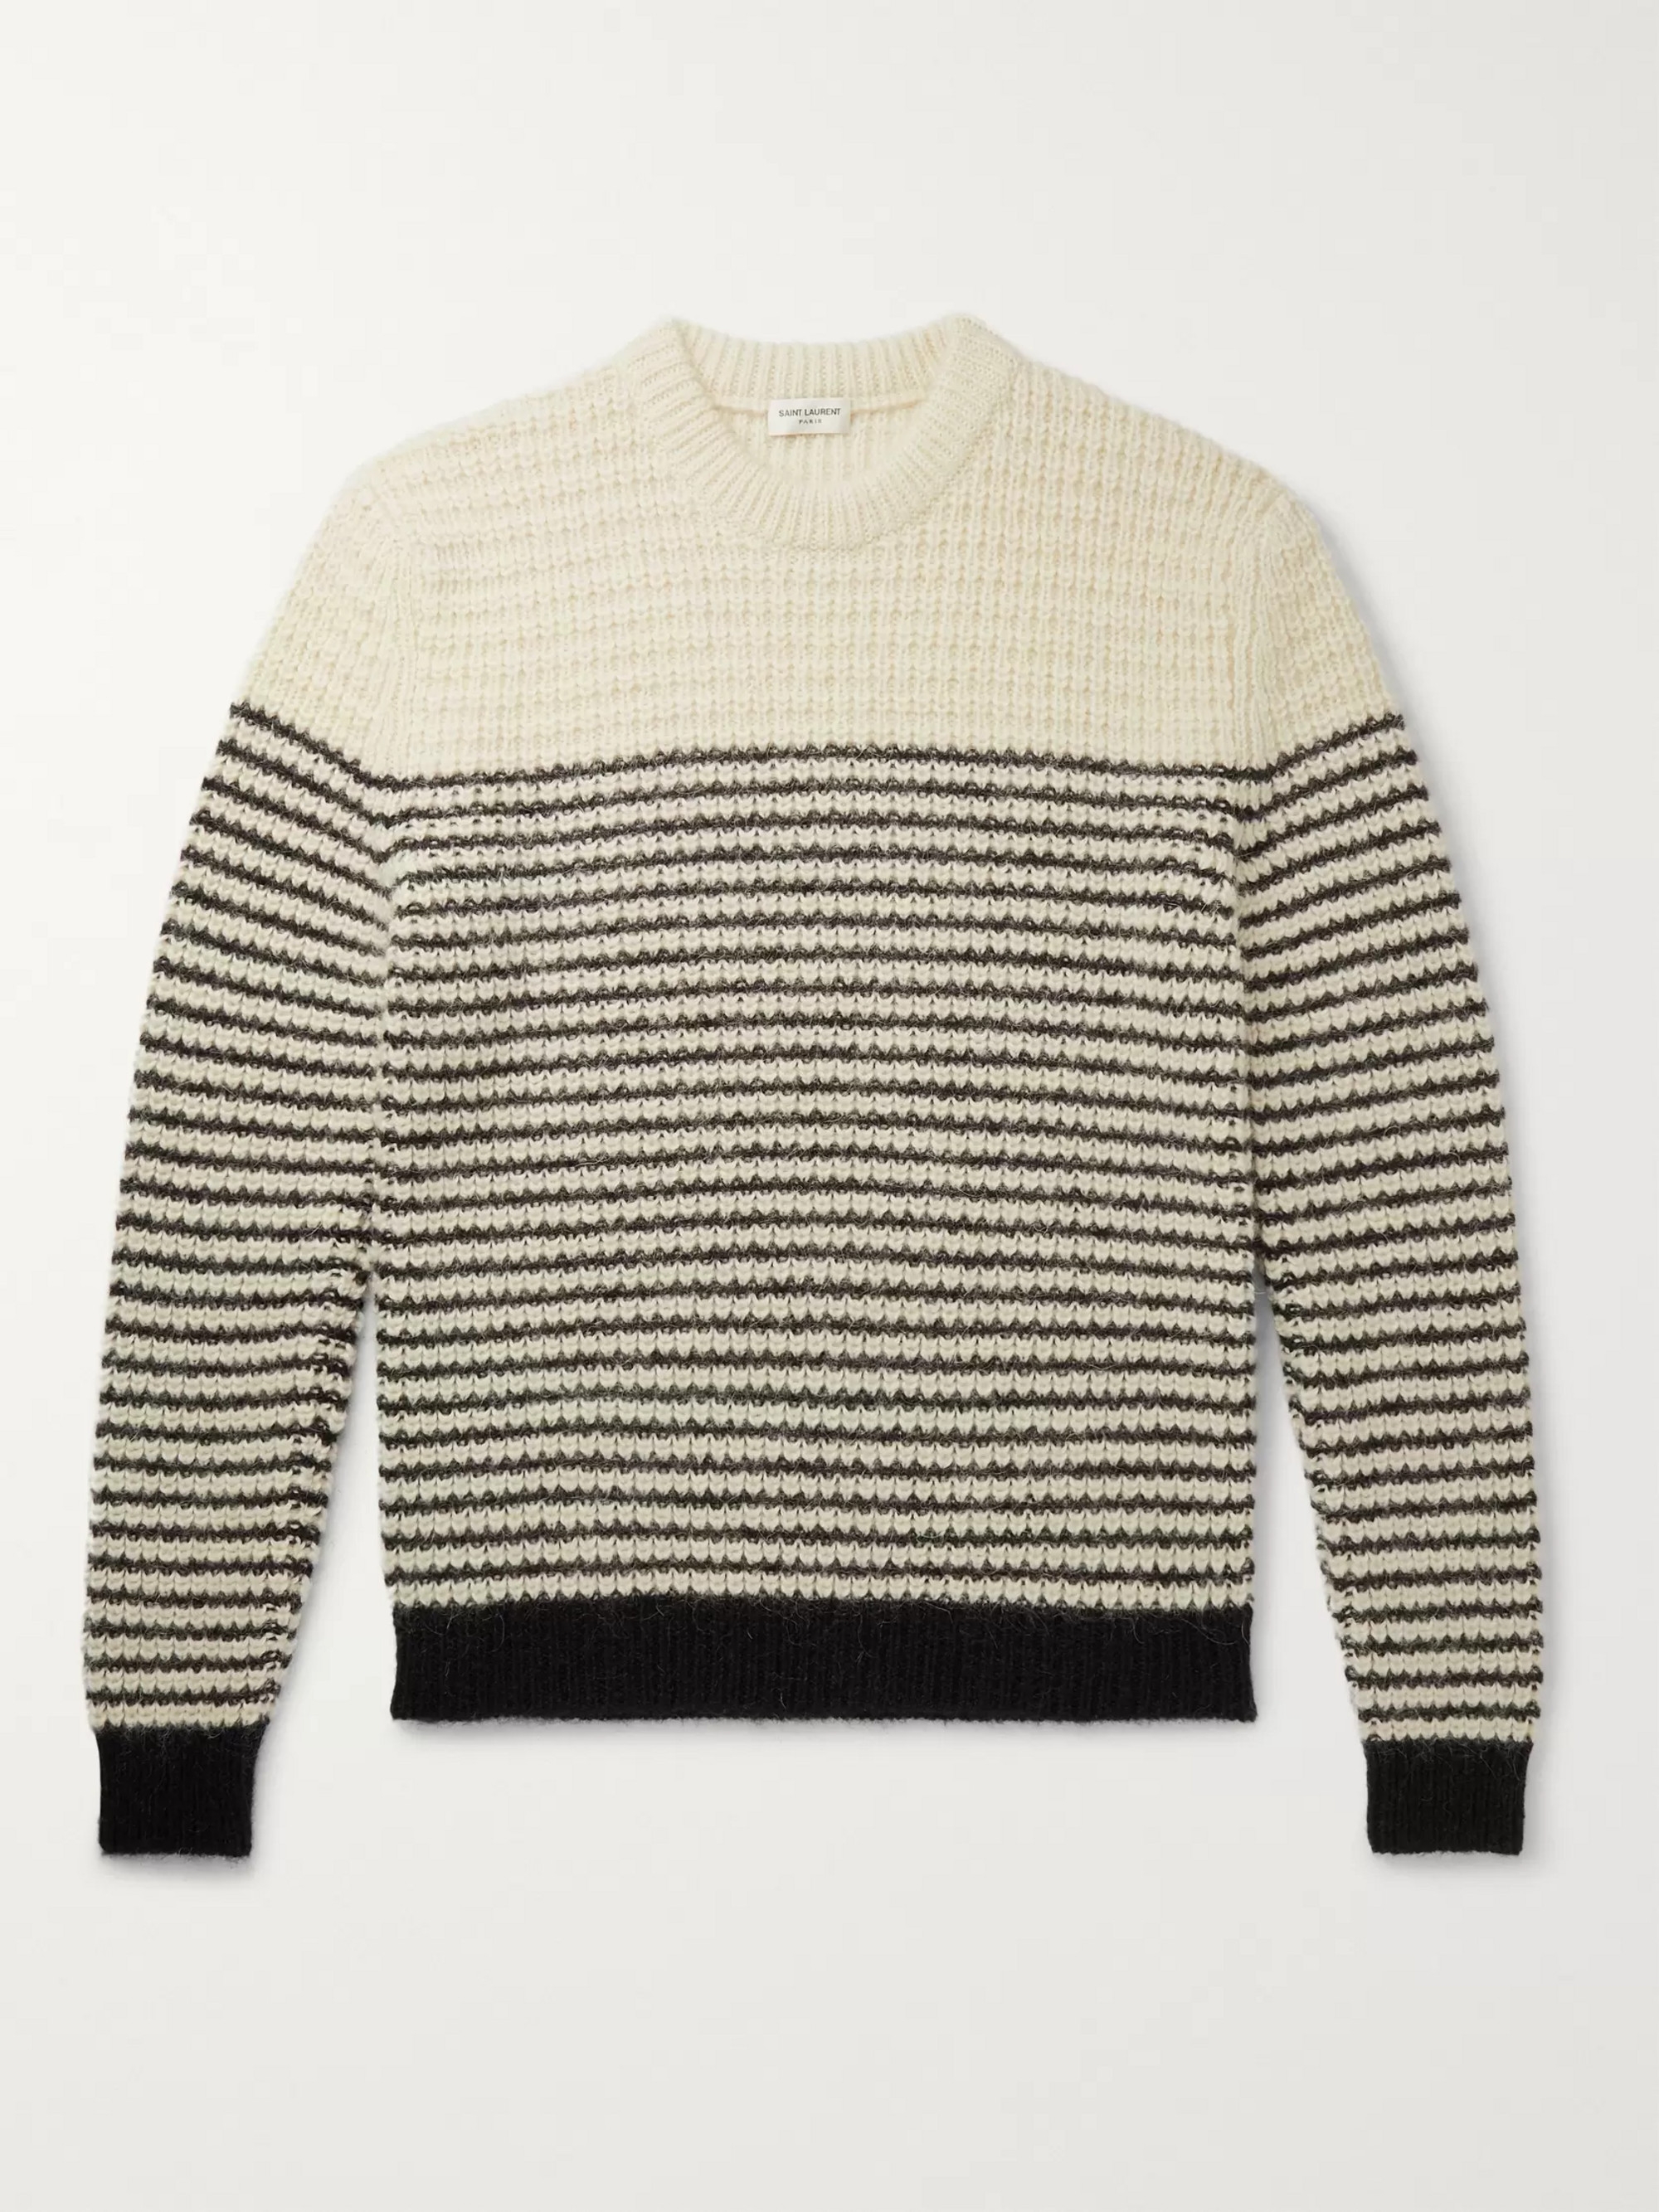 SAINT LAURENT Slim-Fit Striped Knitted Sweater